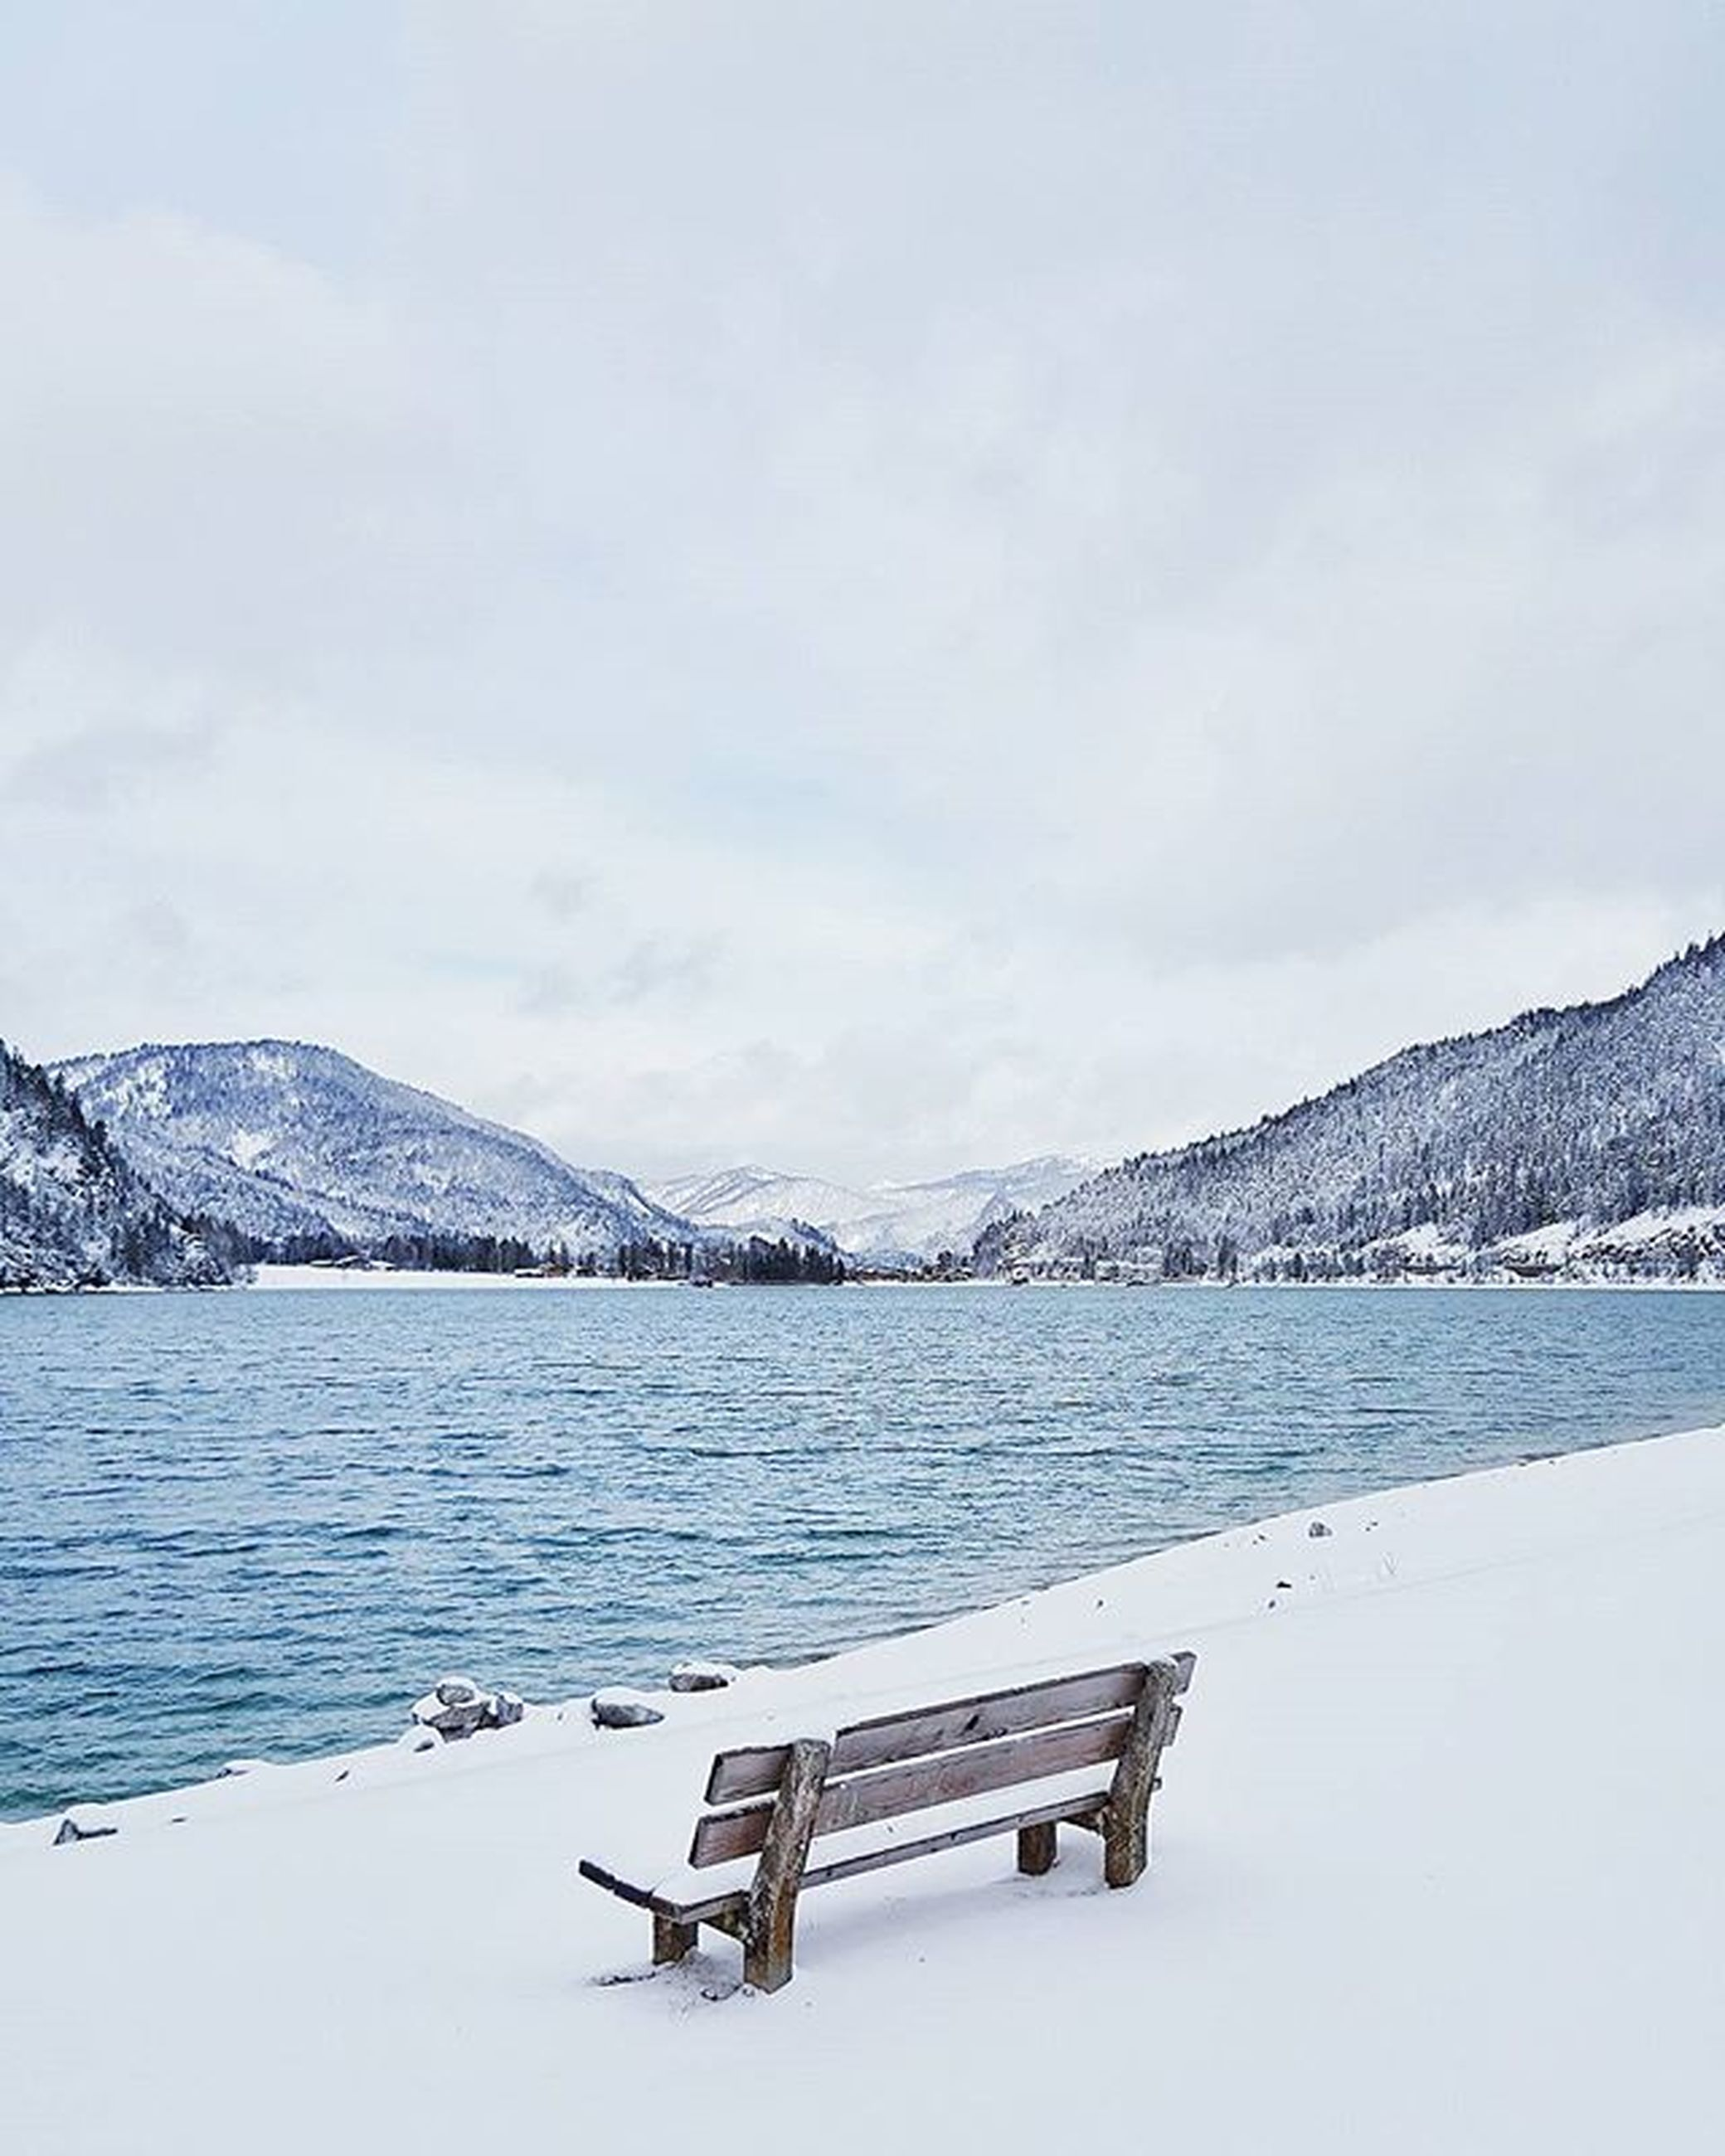 snow, winter, cold temperature, mountain, season, tranquil scene, mountain range, scenics, tranquility, weather, beauty in nature, sky, snowcapped mountain, lake, nature, water, covering, non-urban scene, landscape, cloud - sky